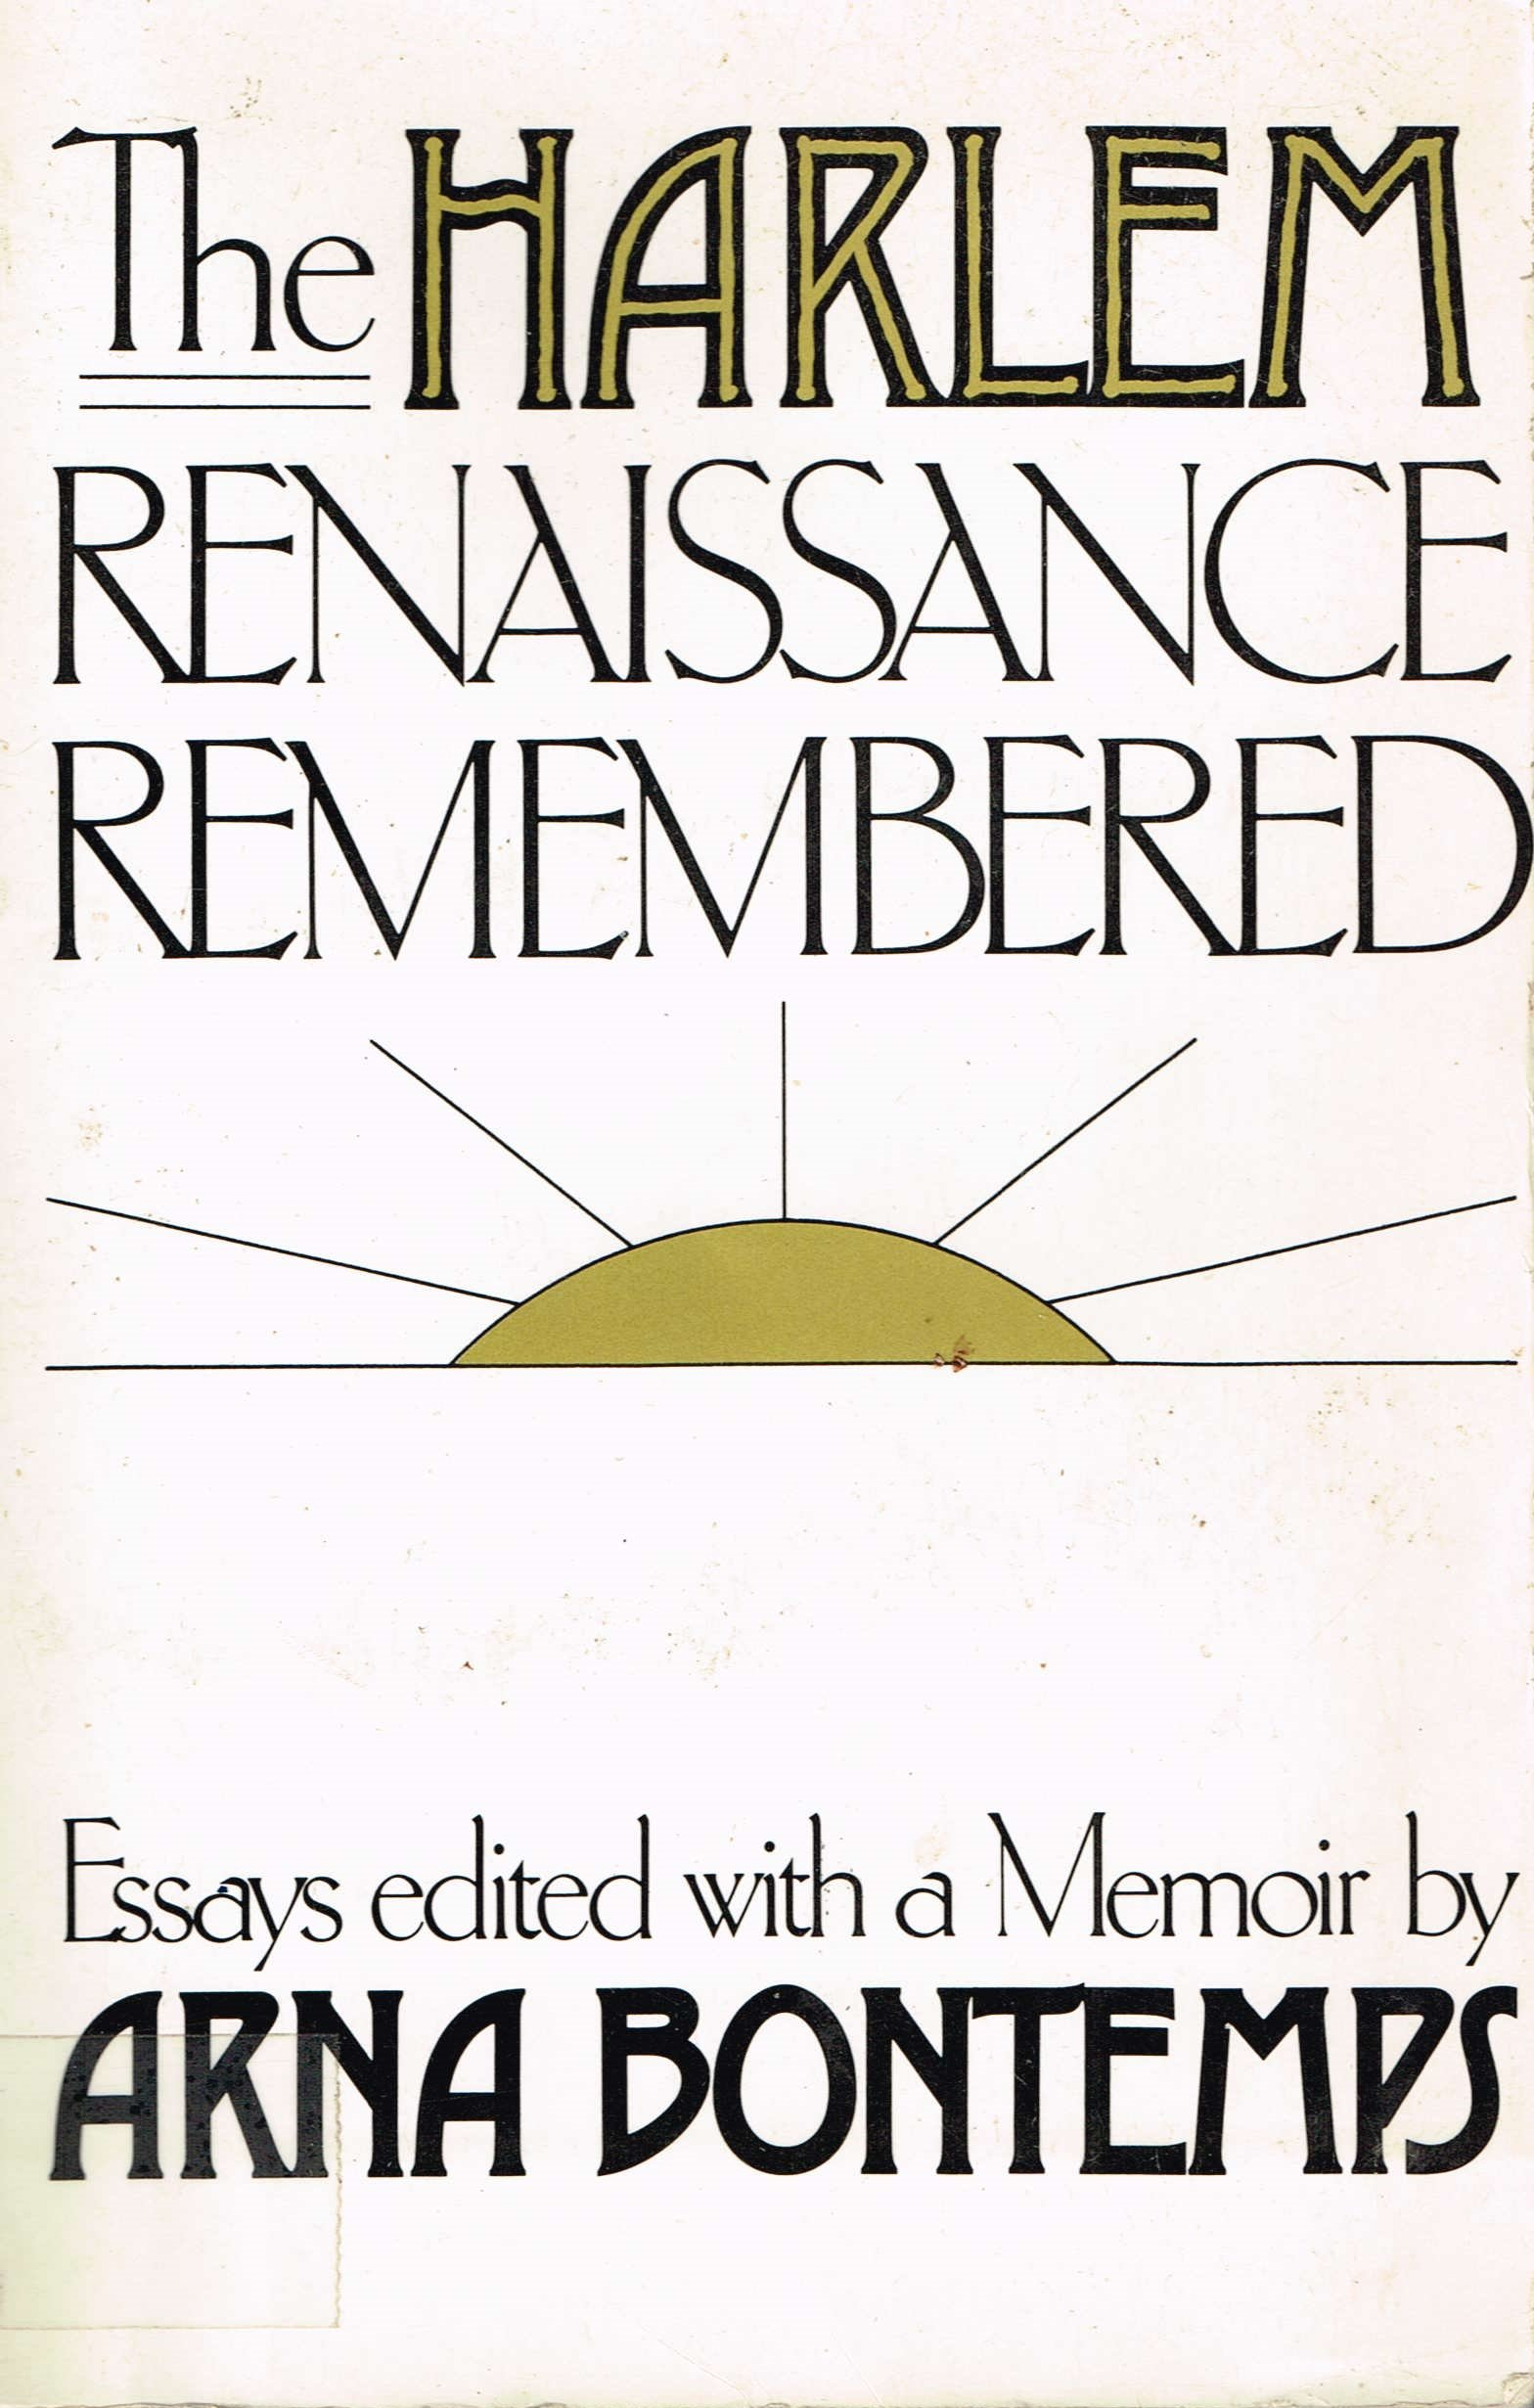 com harlem renaissance remembered essays  com harlem renaissance remembered essays 9780396084327 arna bontemps books